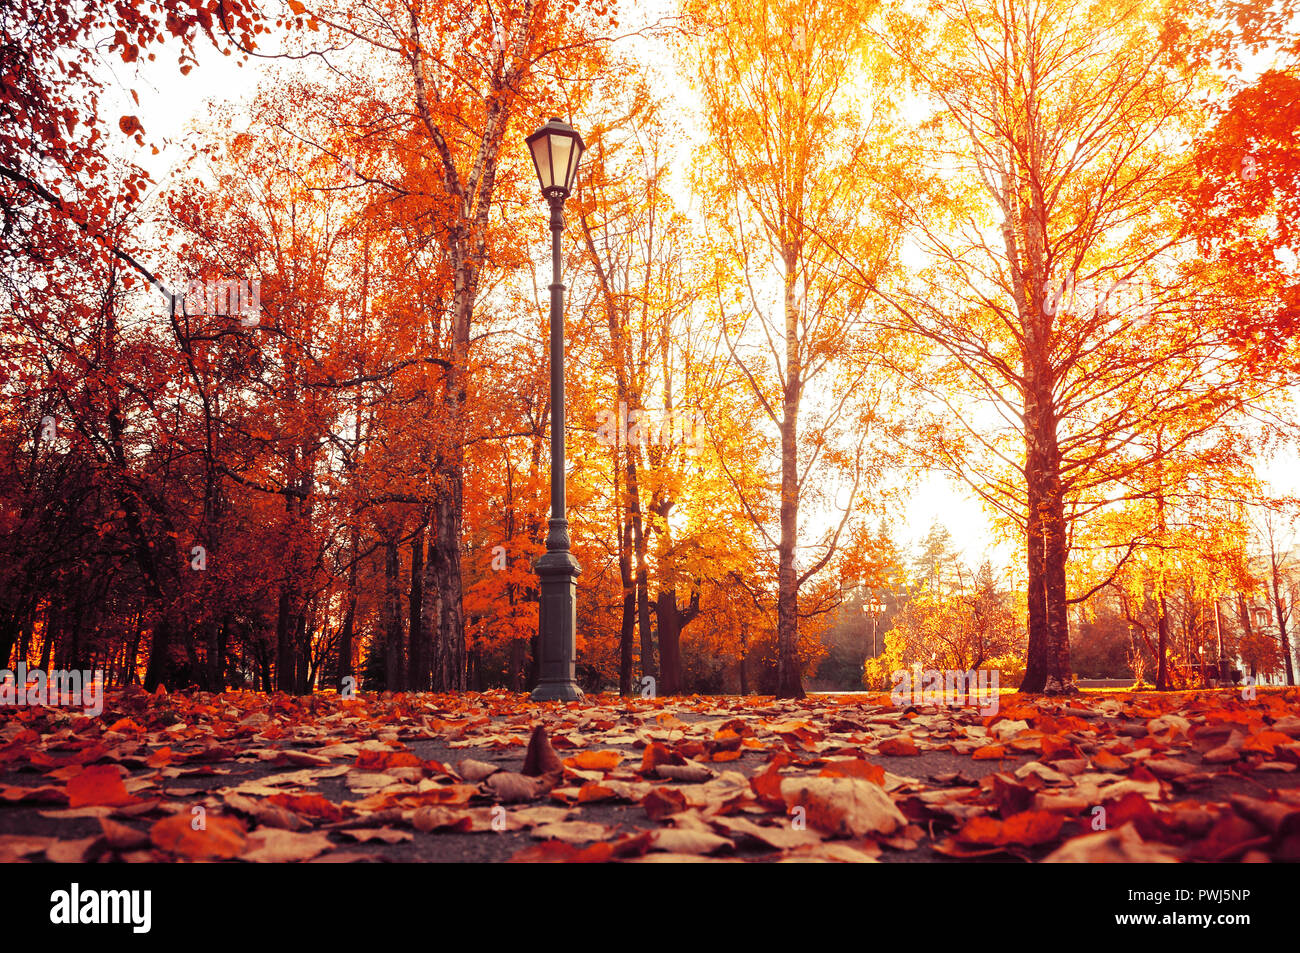 Autumn city landscape. Autumn trees in sunny autumn park lit by sunshine and fallen maple leaves on the foreground. Autumn city park scene Stock Photo